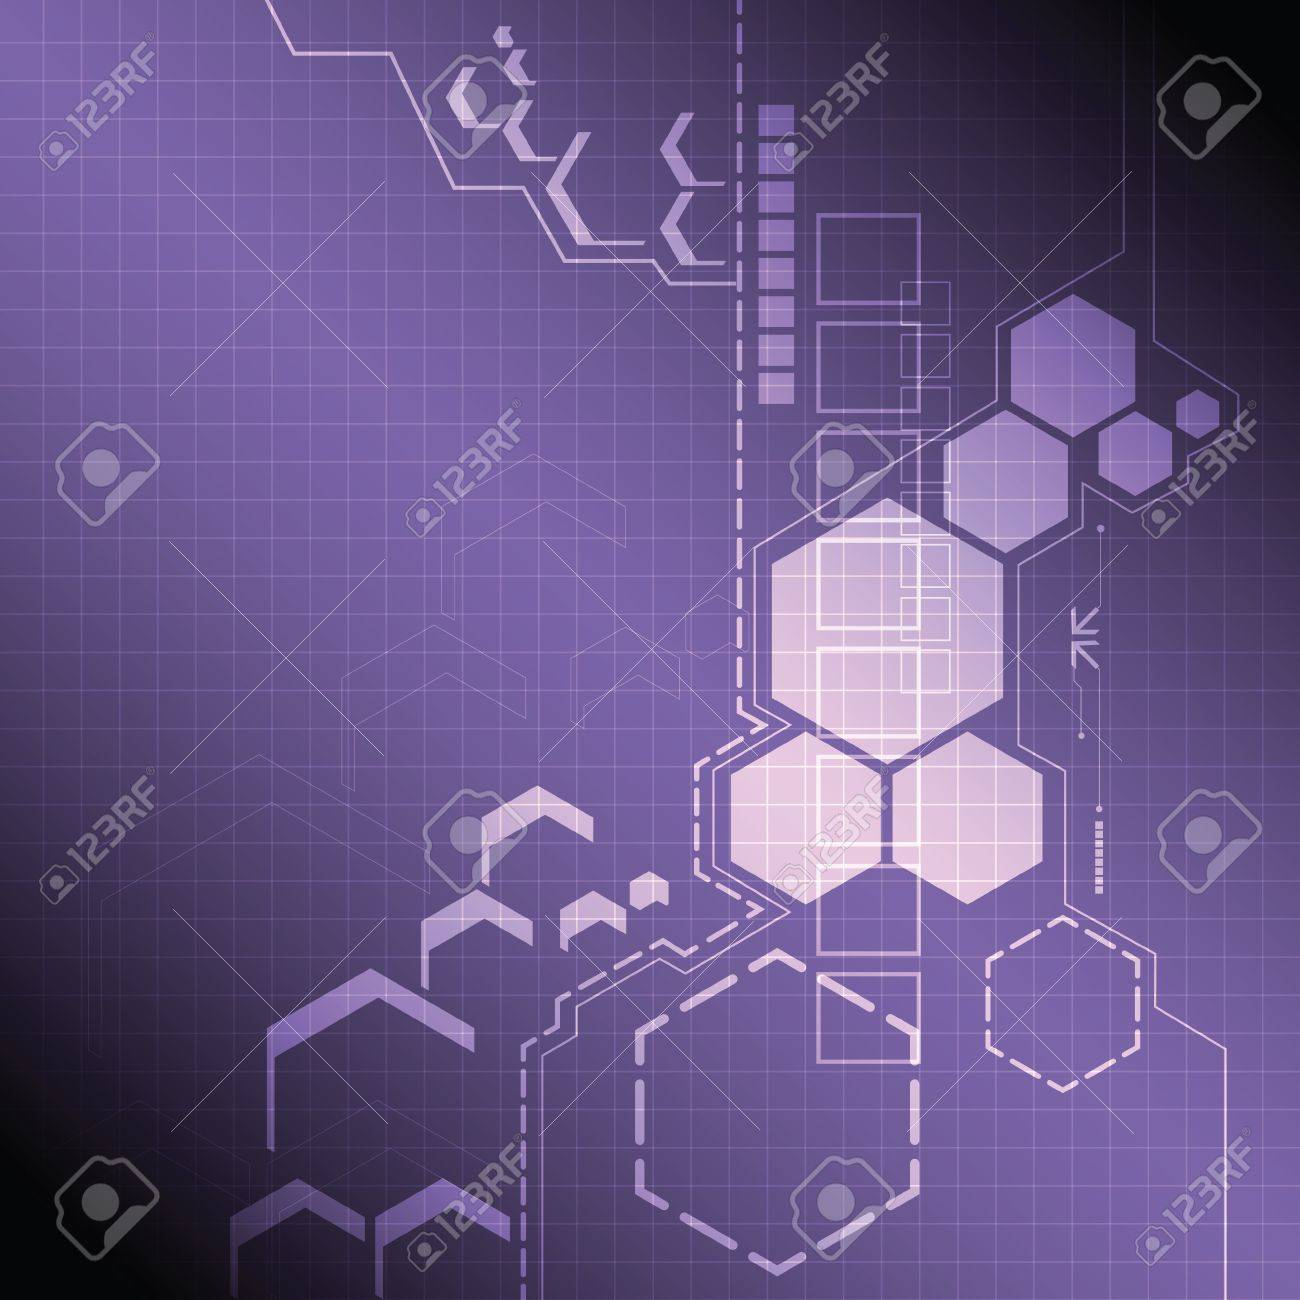 abstract technology background design Stock Vector - 20754657